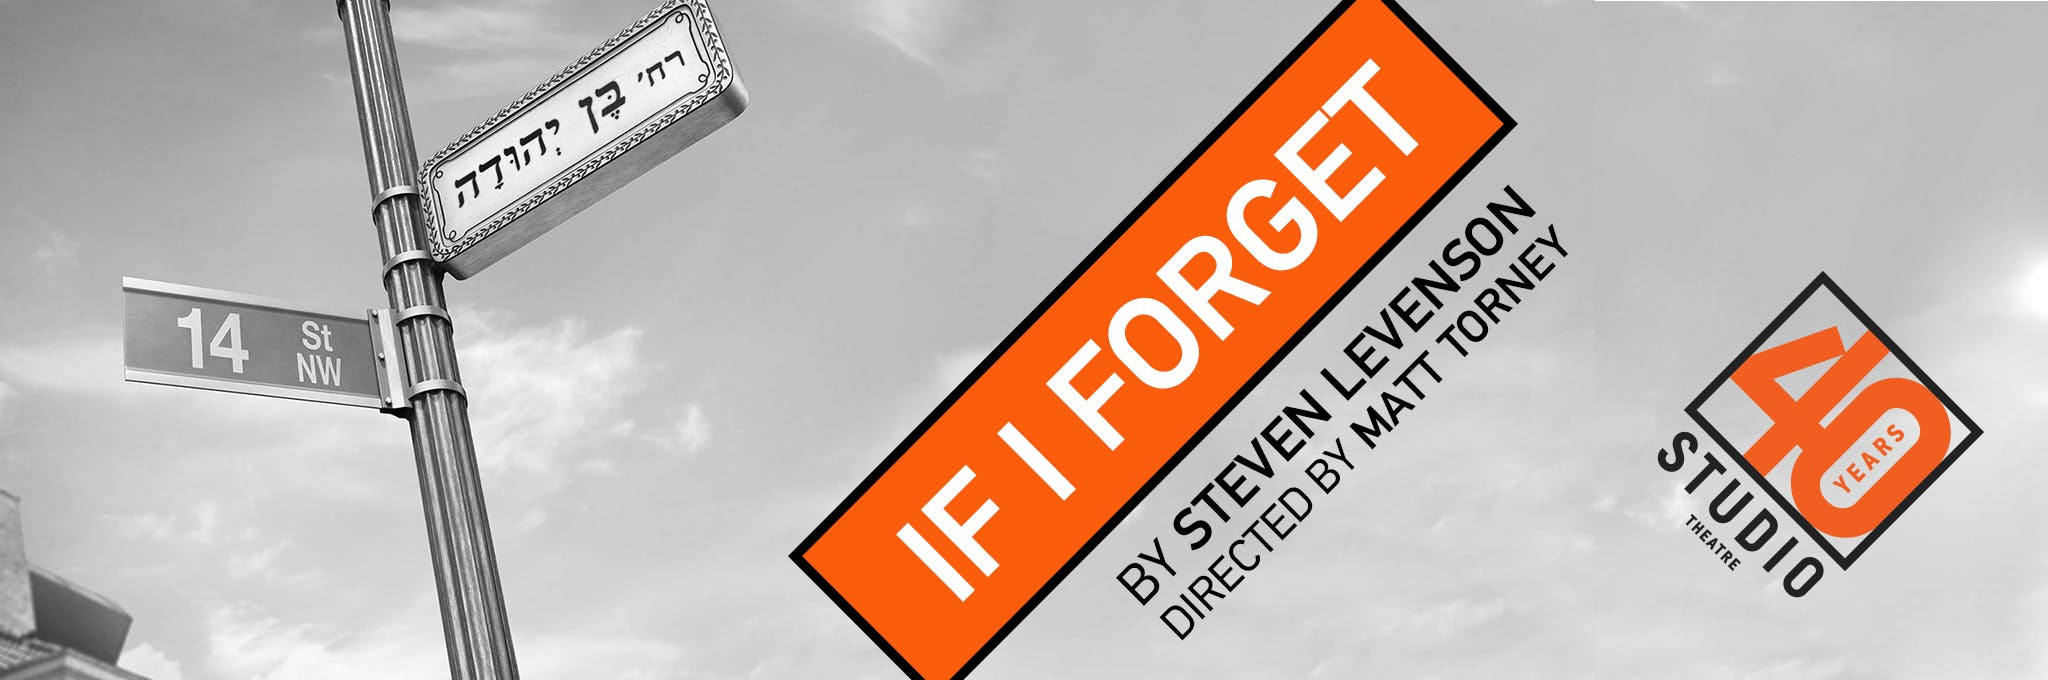 5 for 5 Lottery - If I Forget Logo